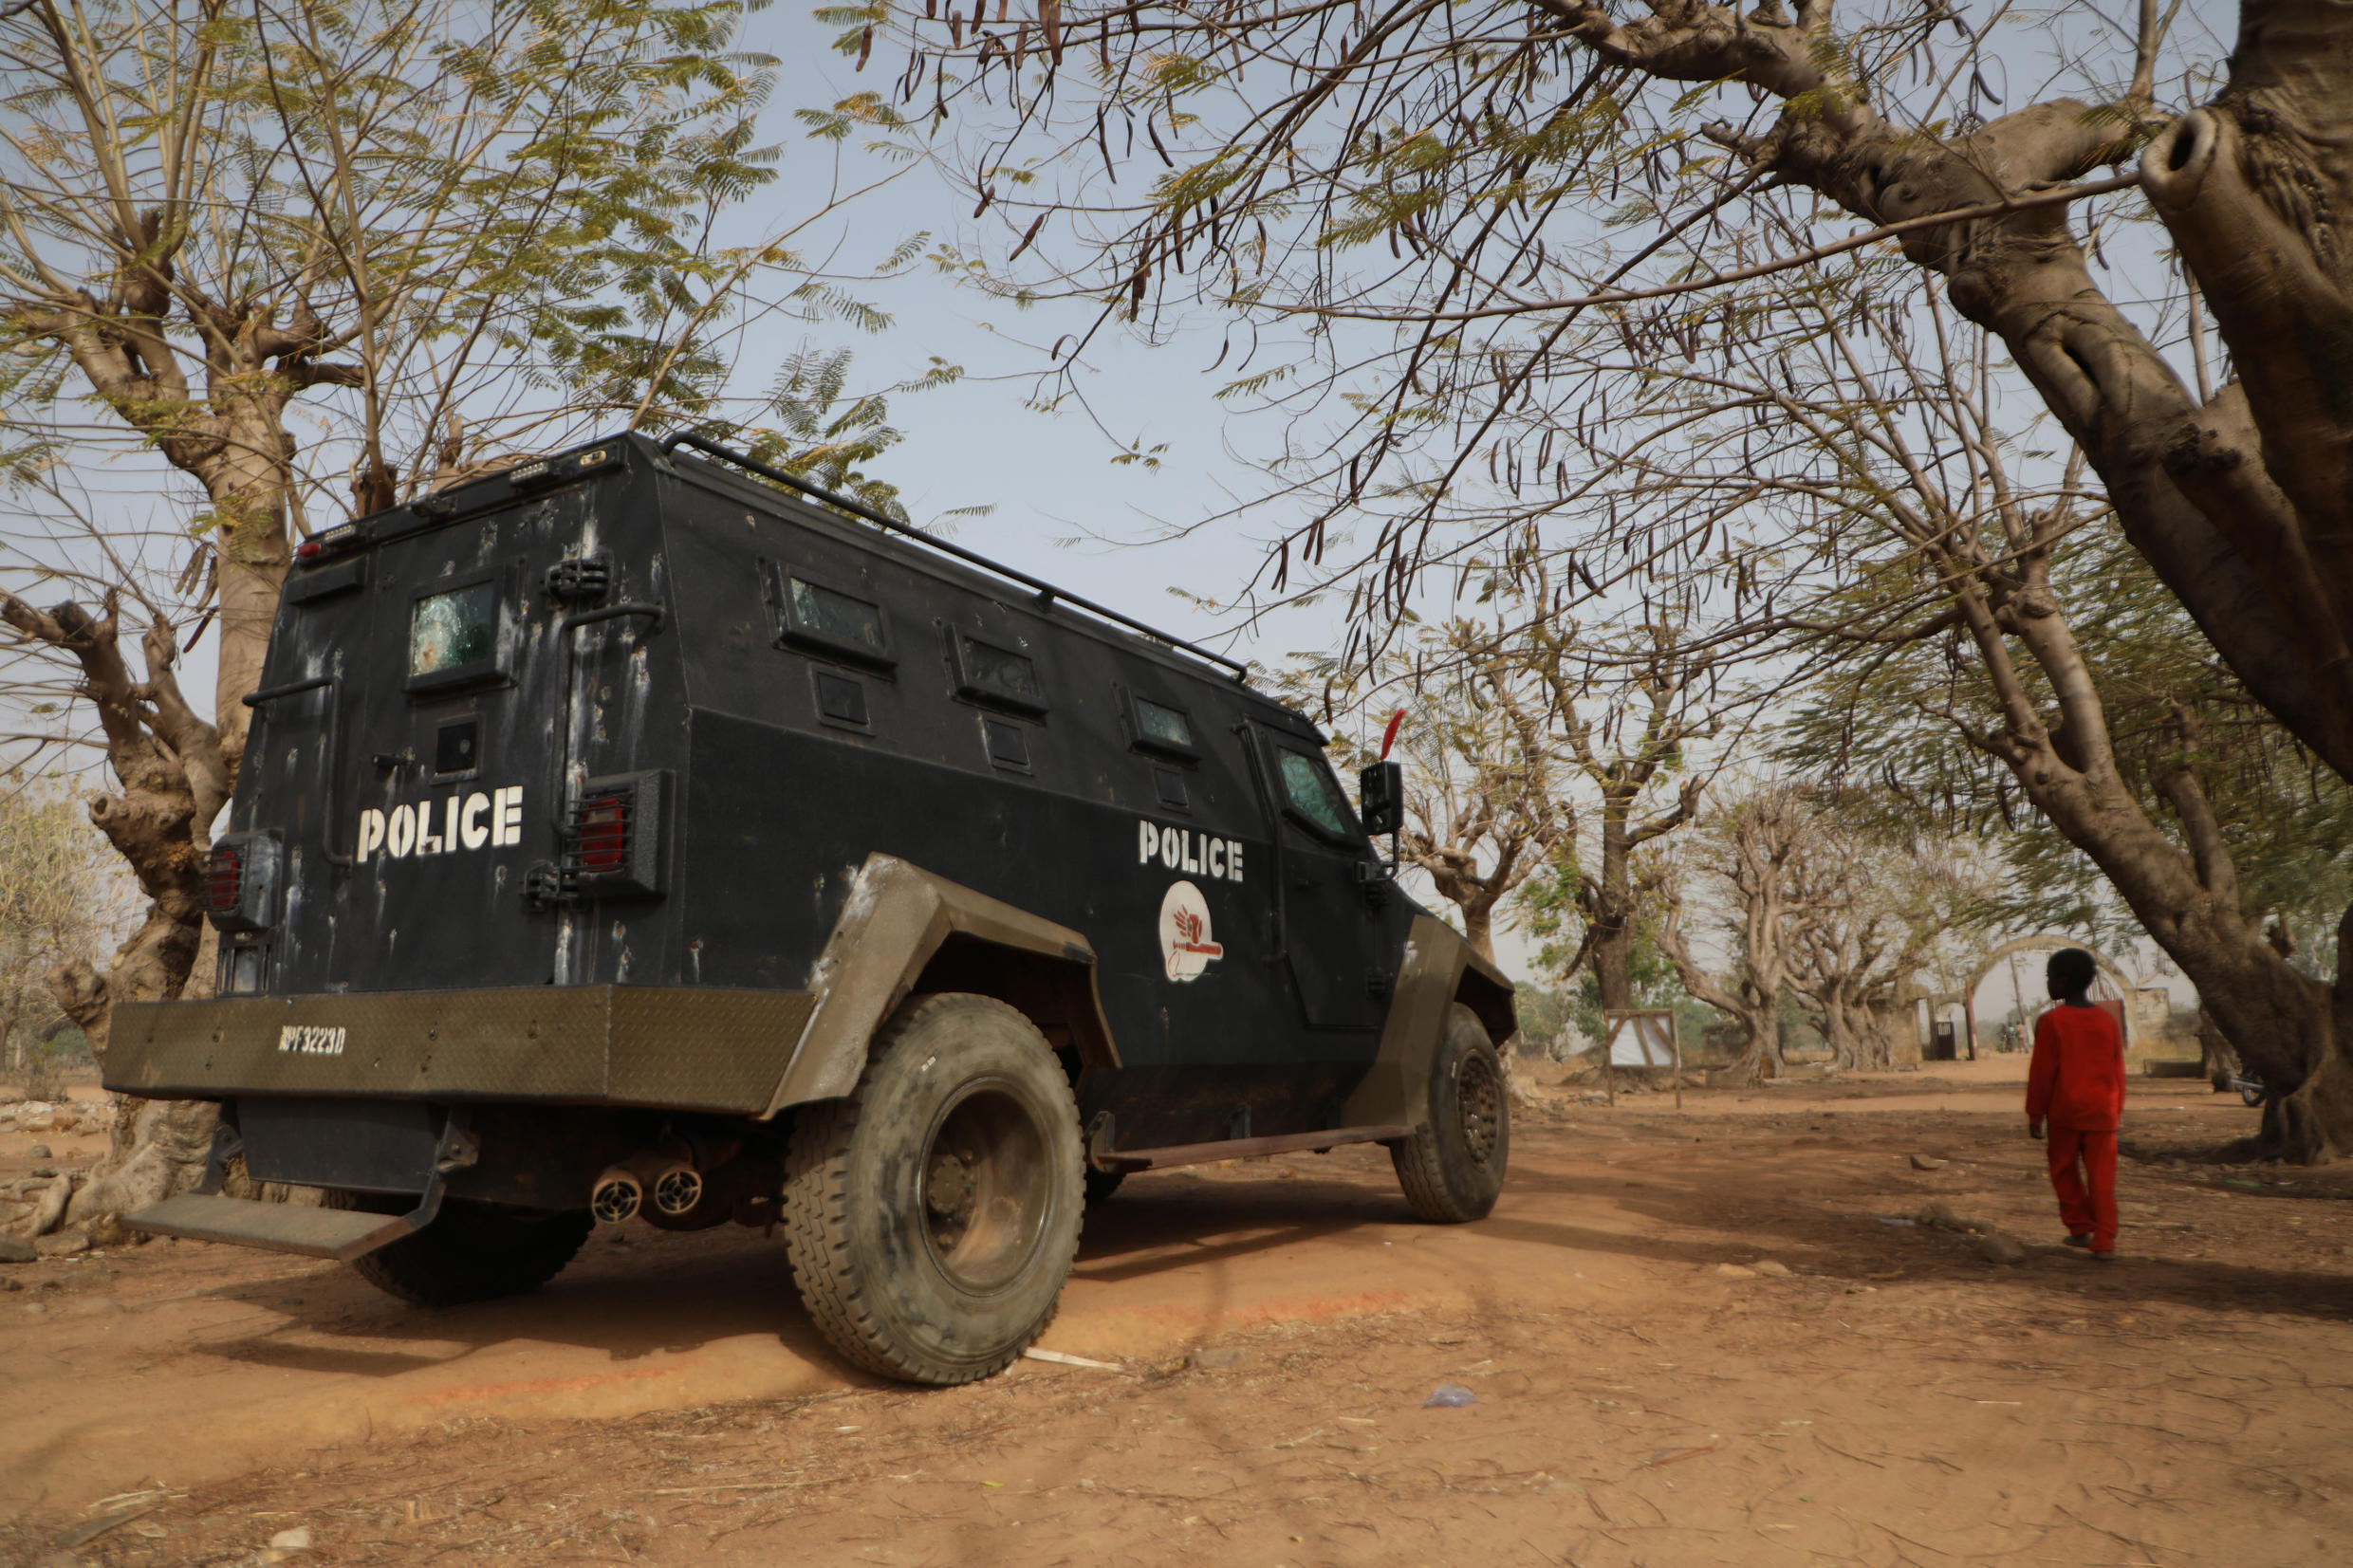 Police and the military have joined forces to search for those abducted